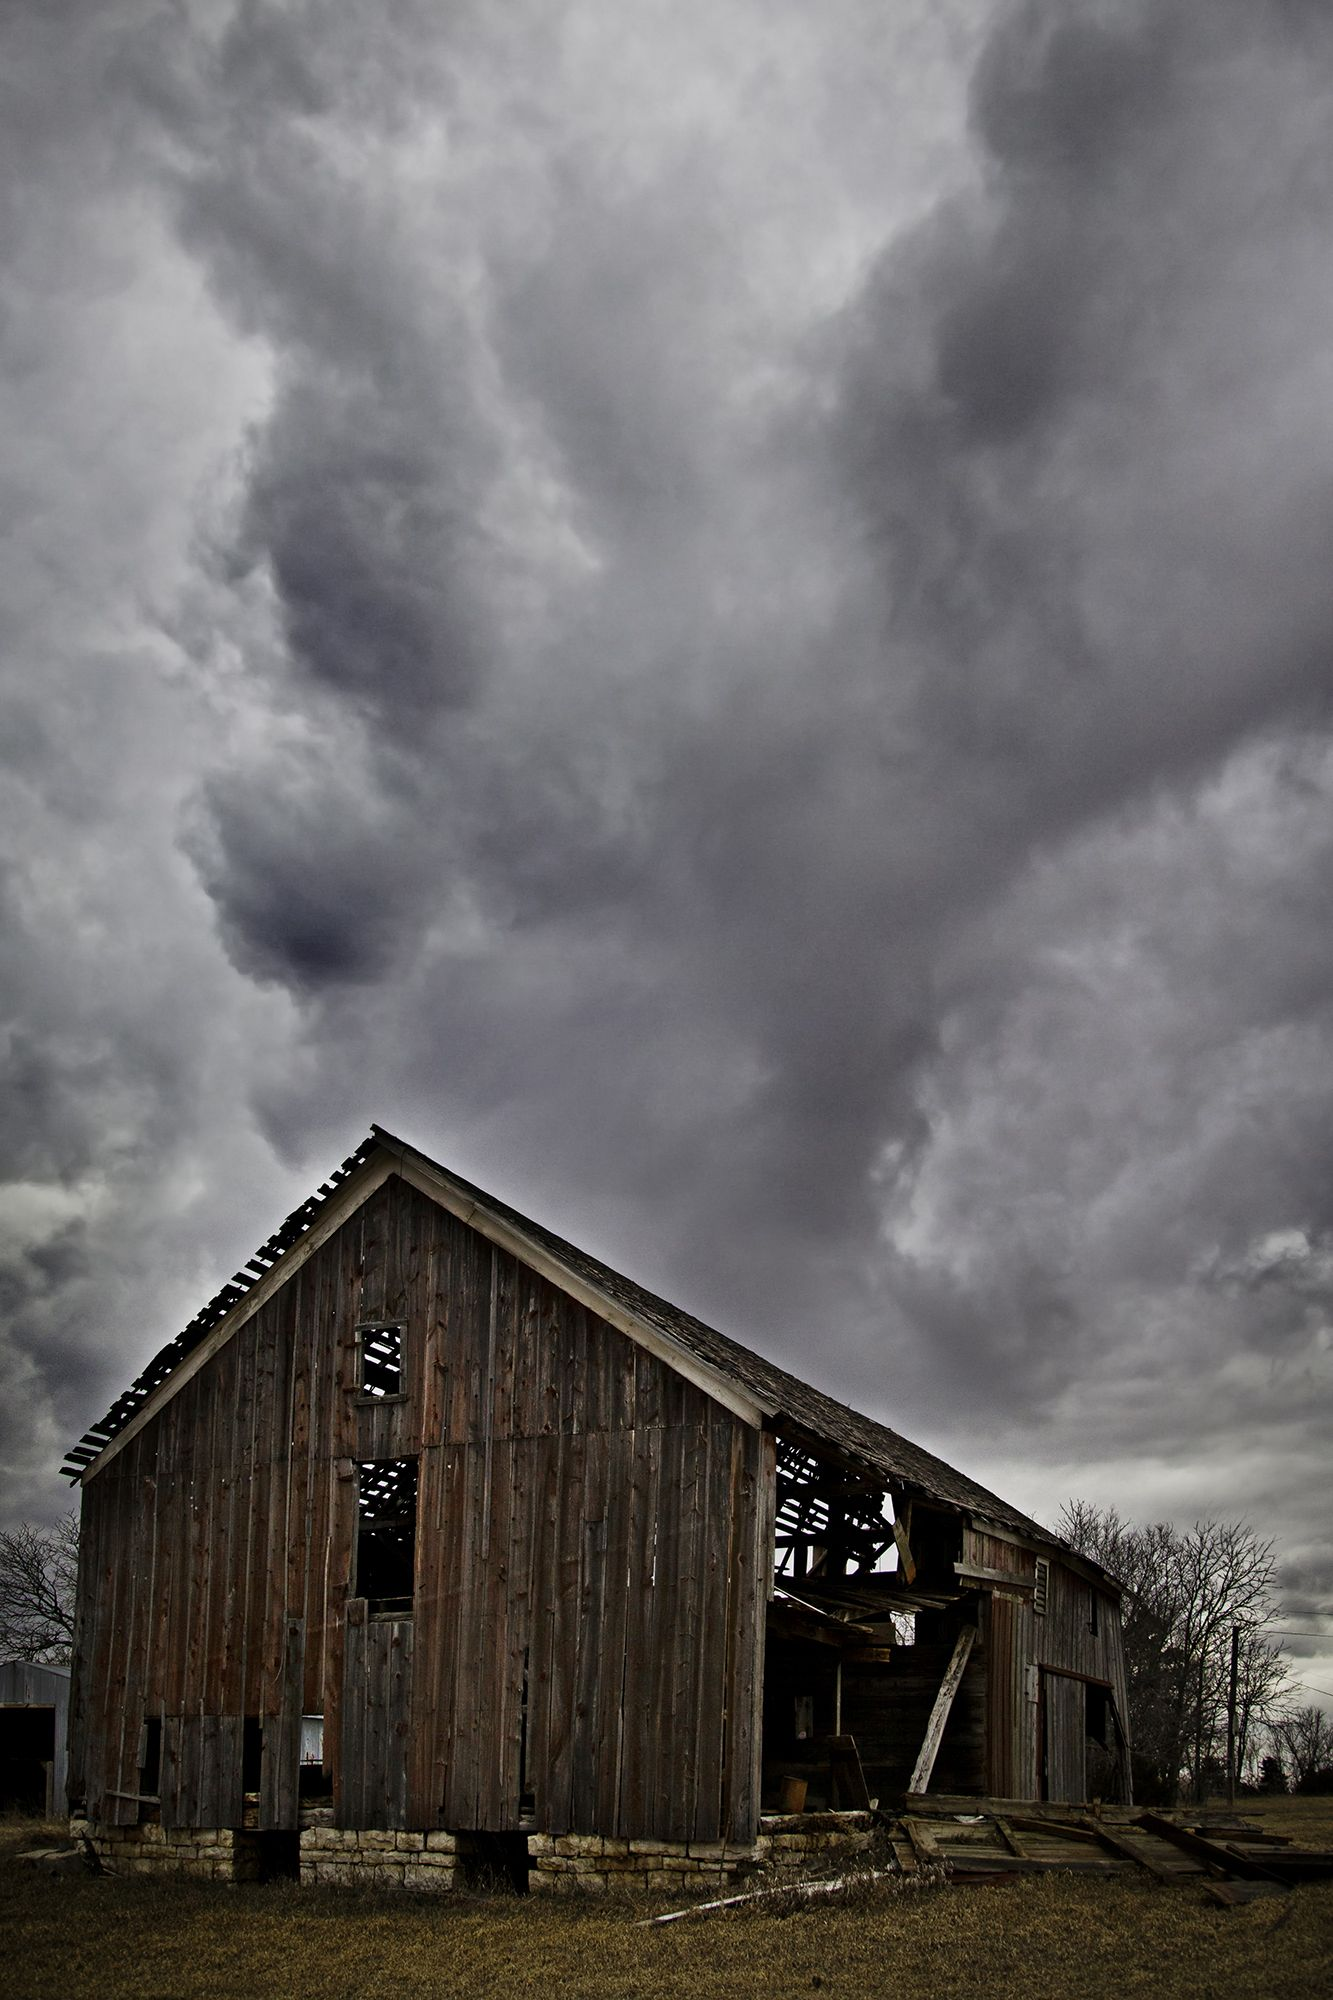 Barn Under the Storm